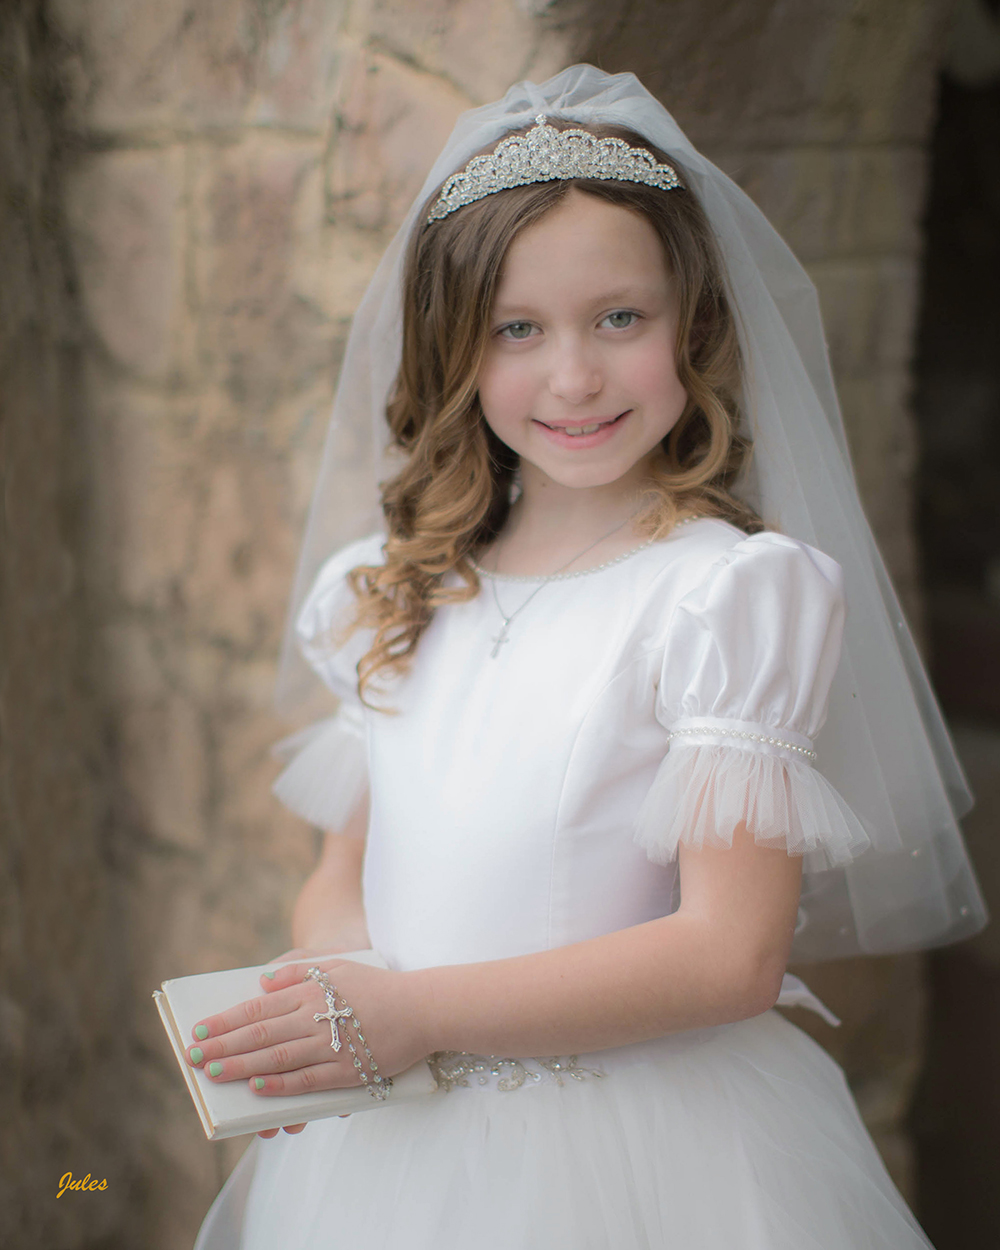 communion-dress-ideas-that-work-in-pictures